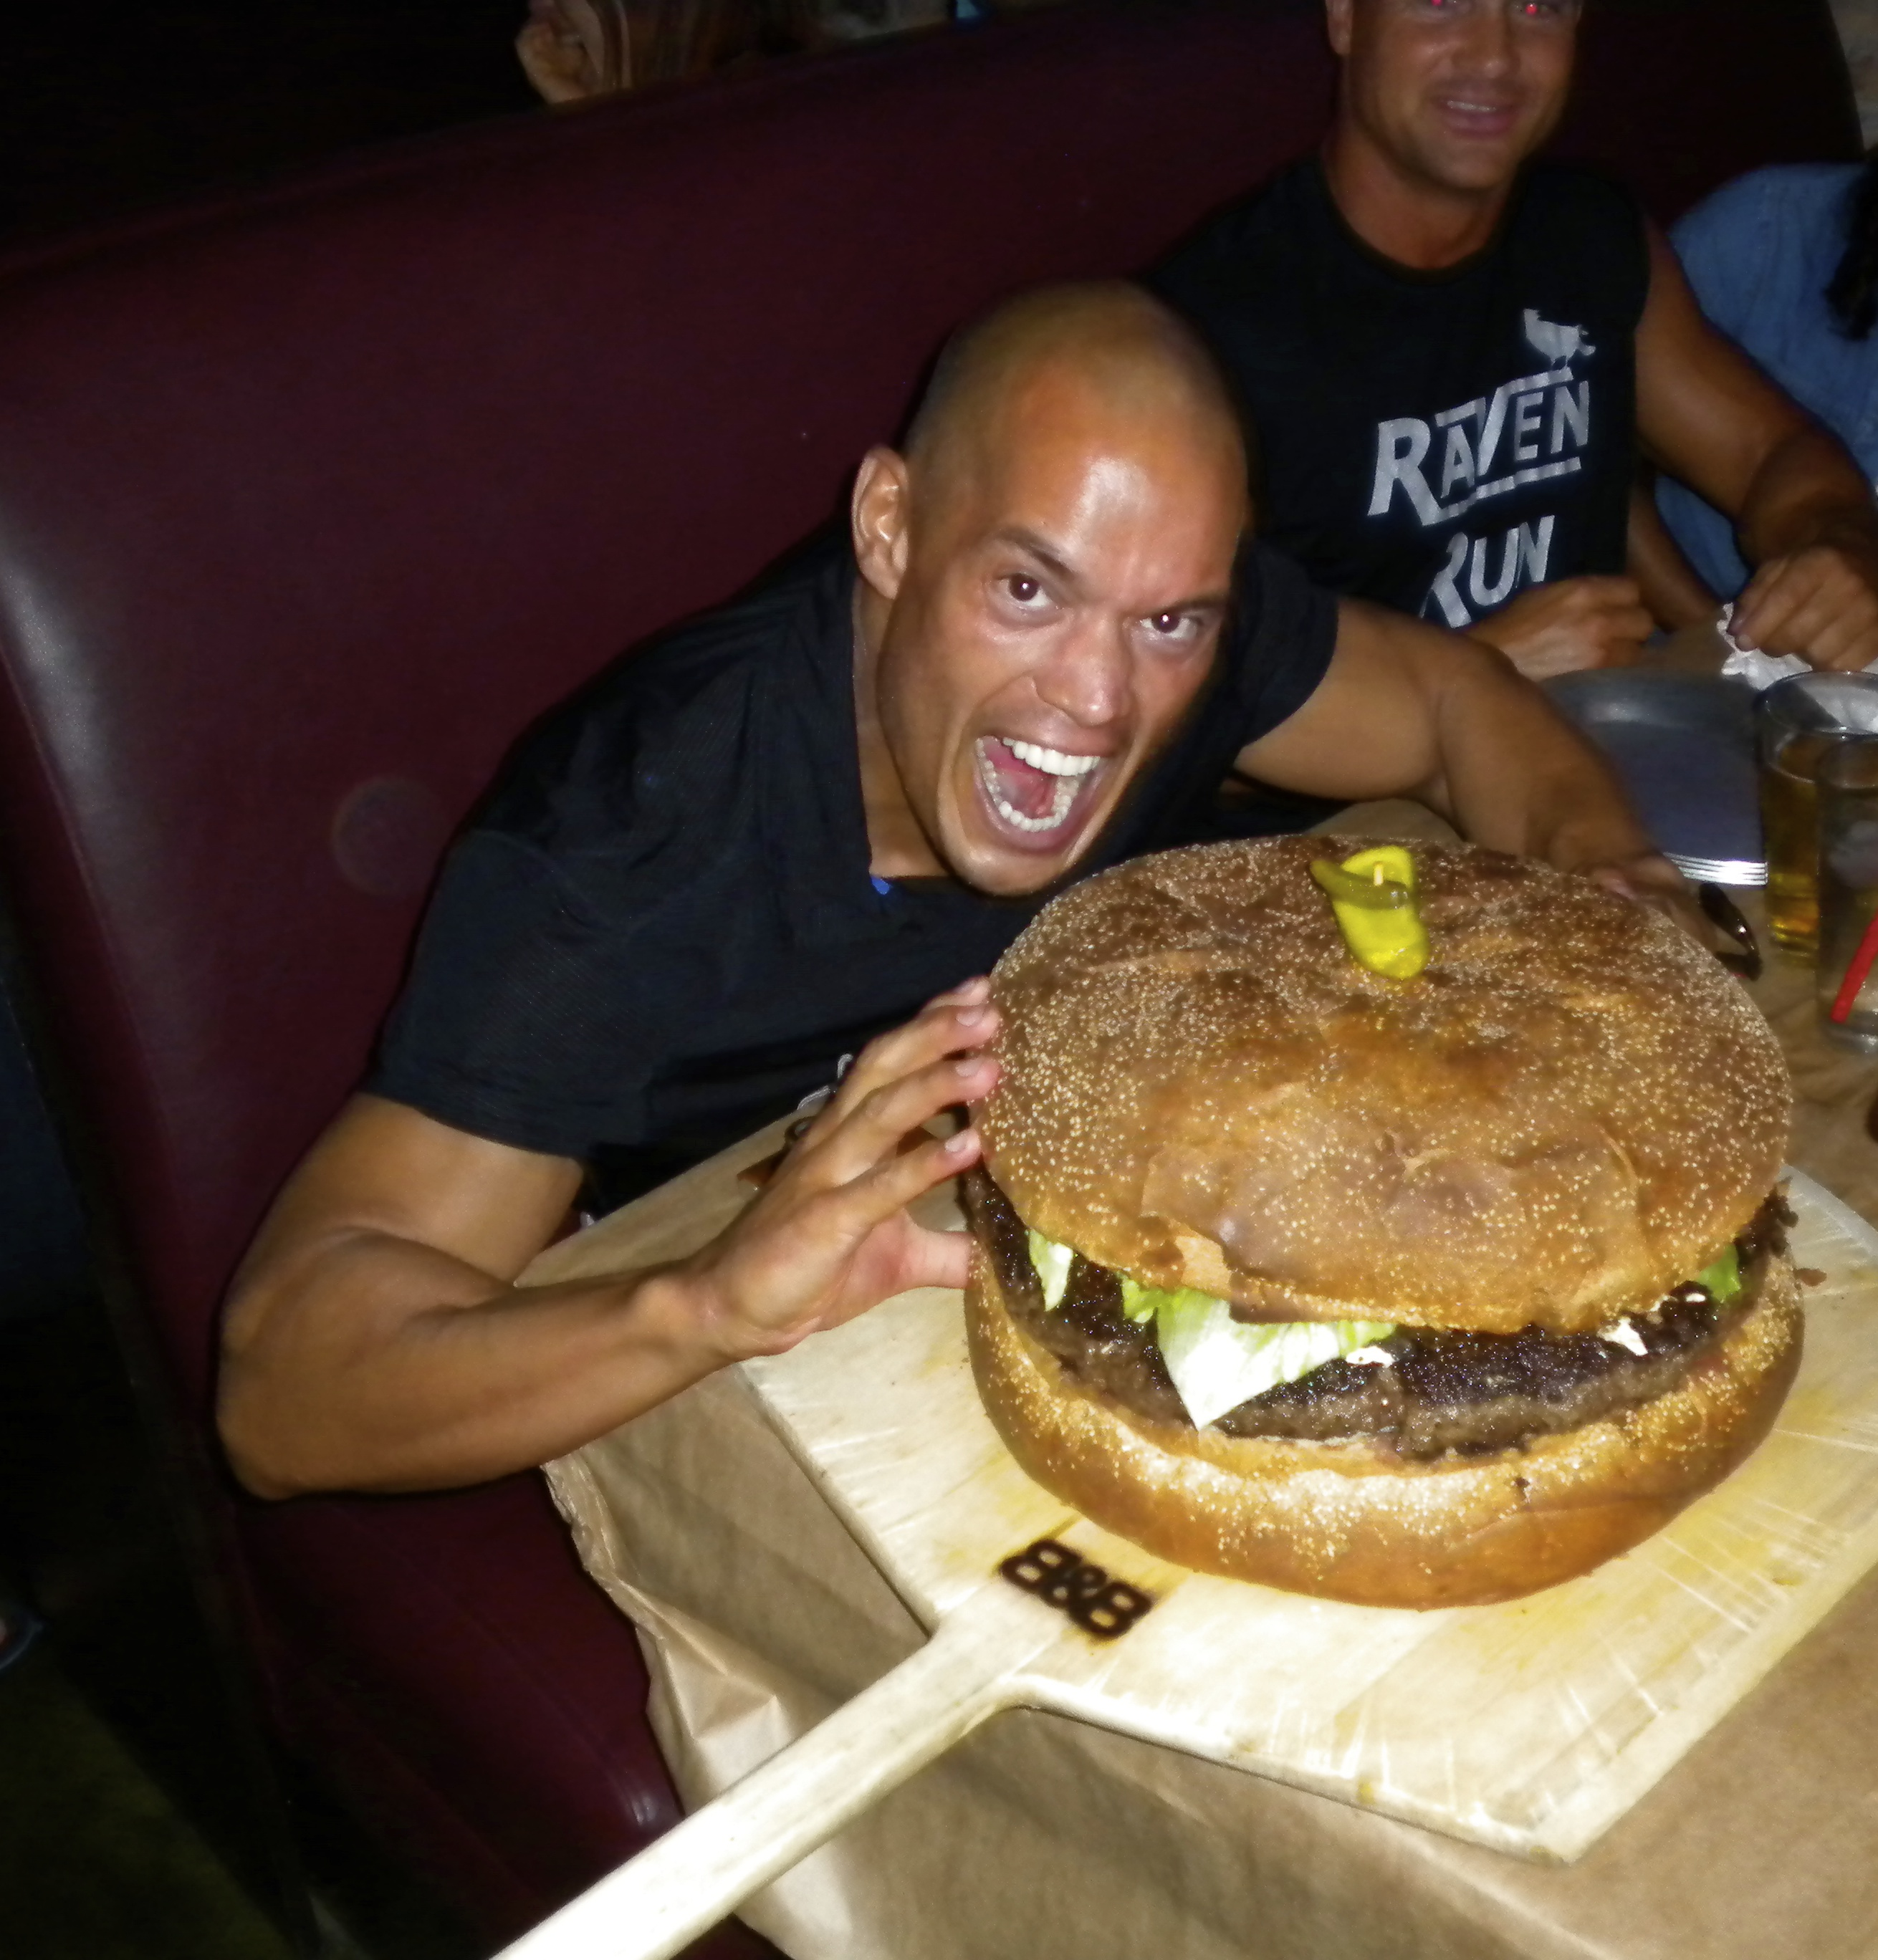 10 lb Hamburger!